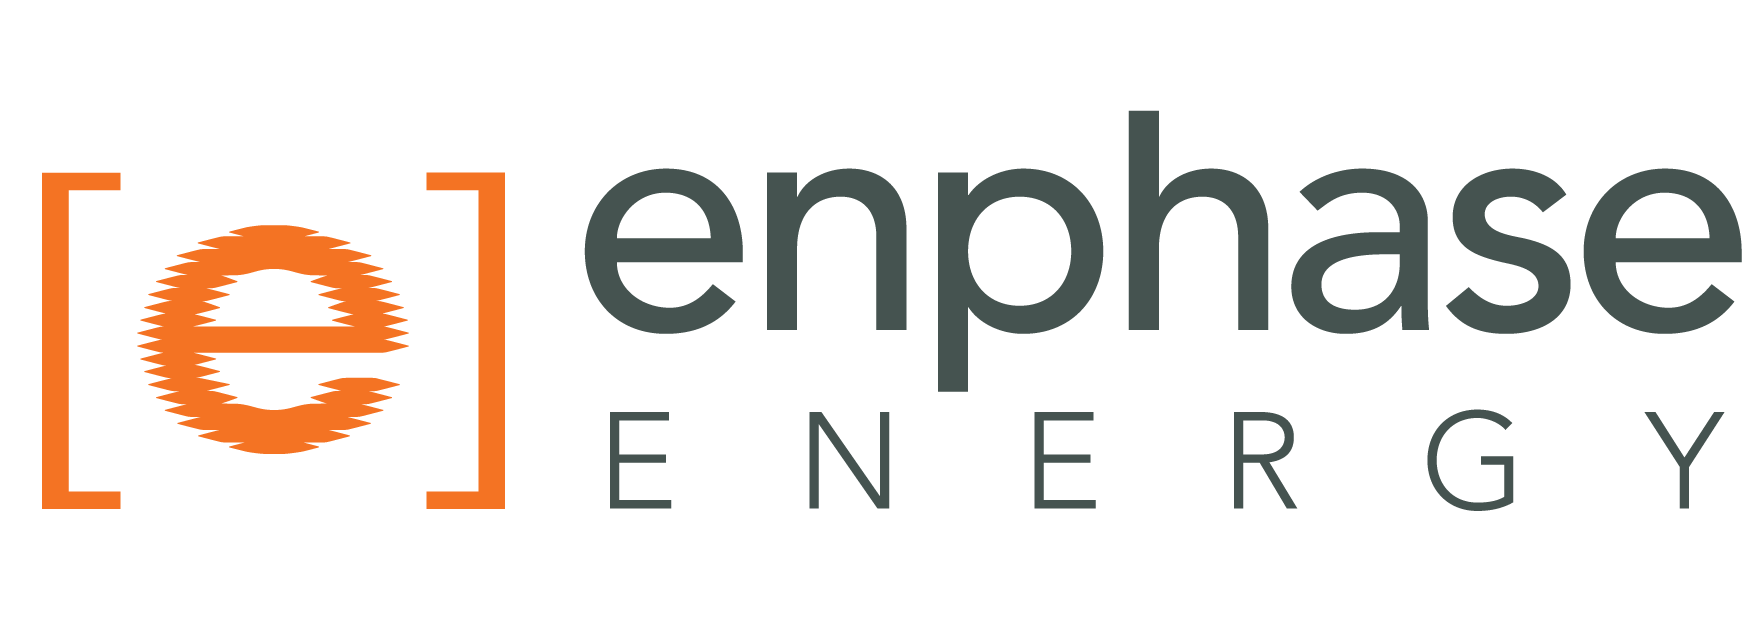 enphase-energy-logo-copy.png